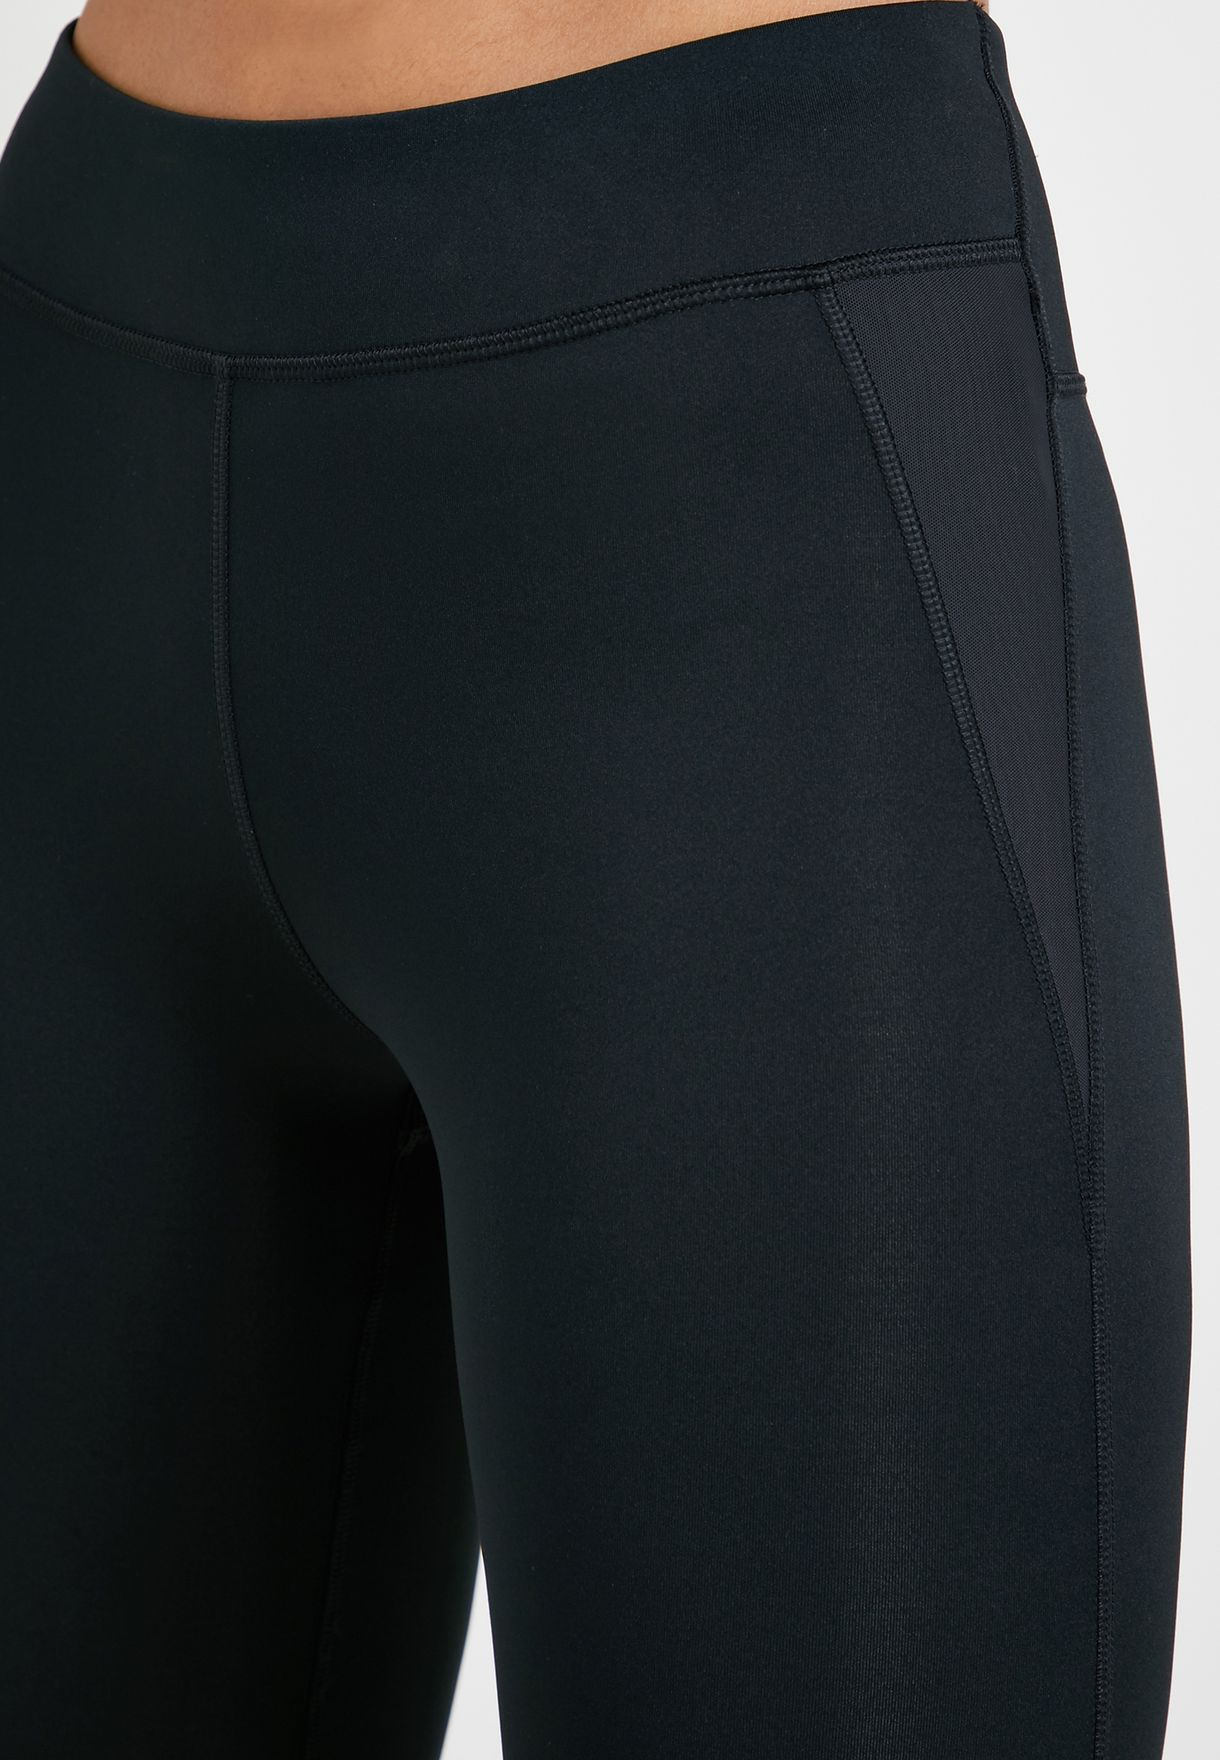 Workout Ready High Rise Tights